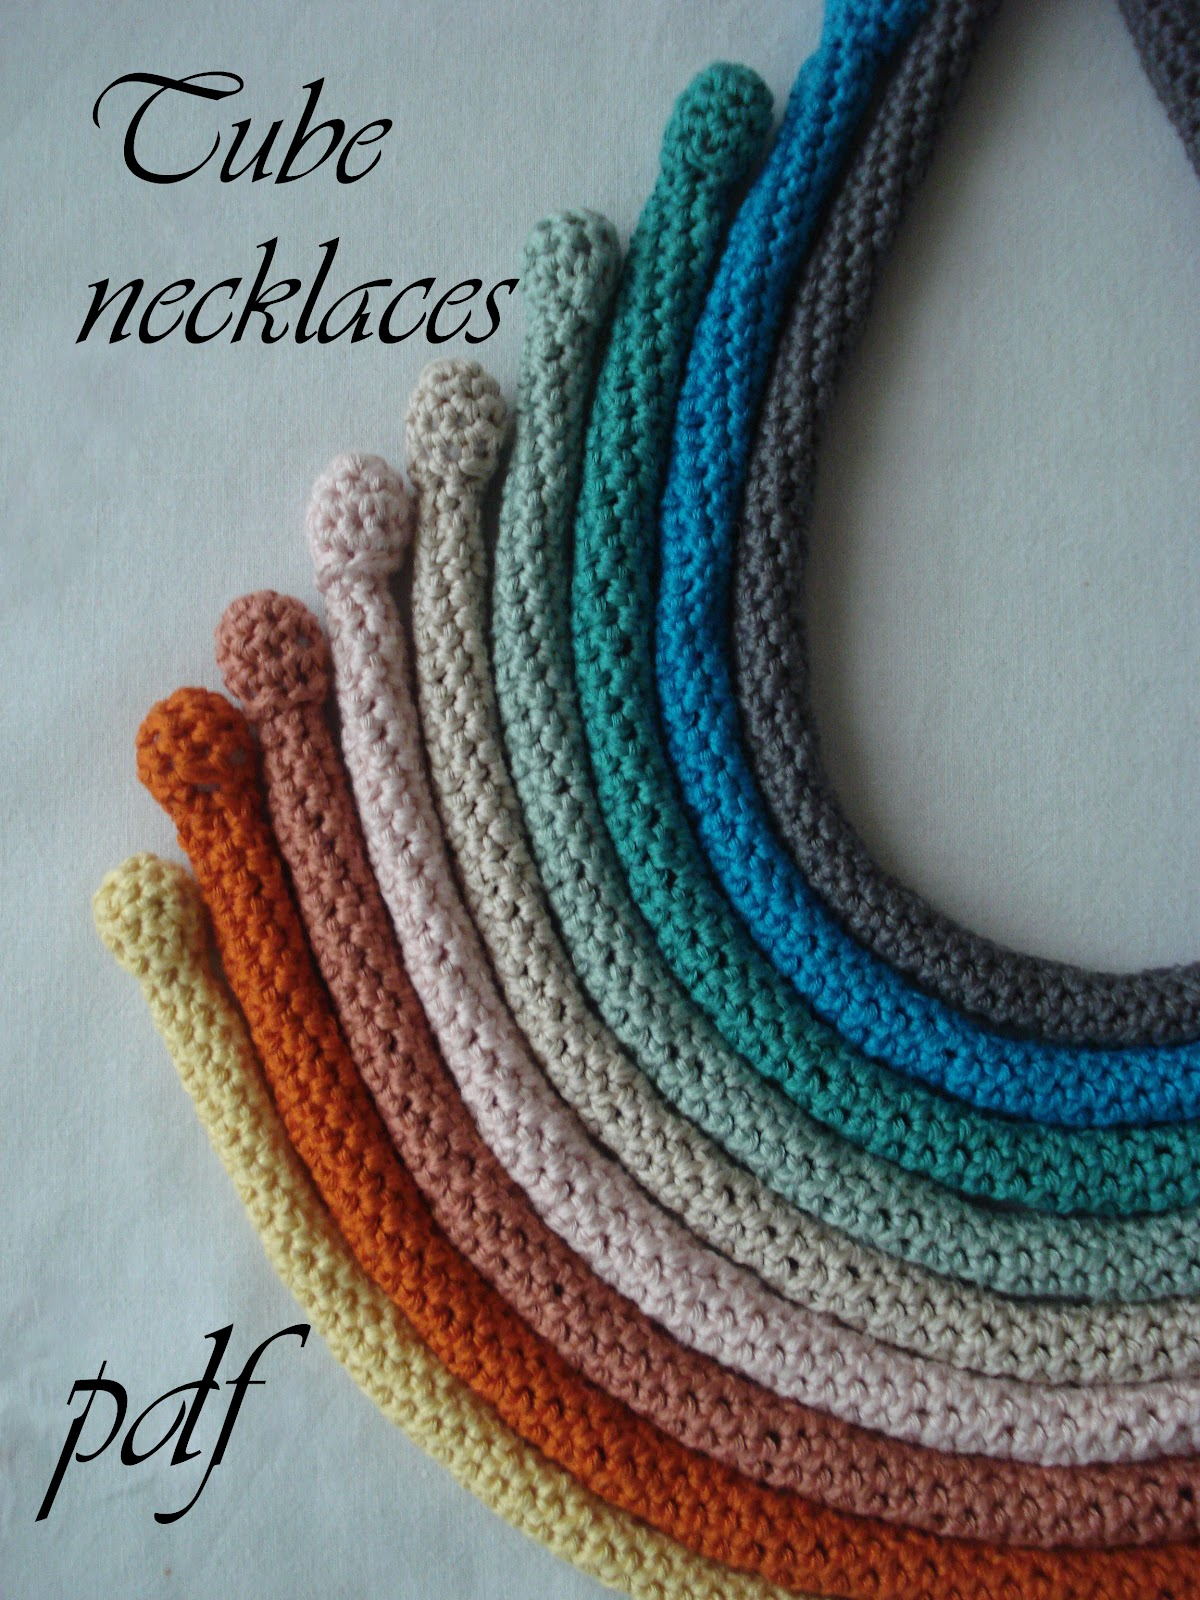 Crochet Patterns Necklace : Little Treasures: PDF Crochet Pattern for sale - Tube Necklaces